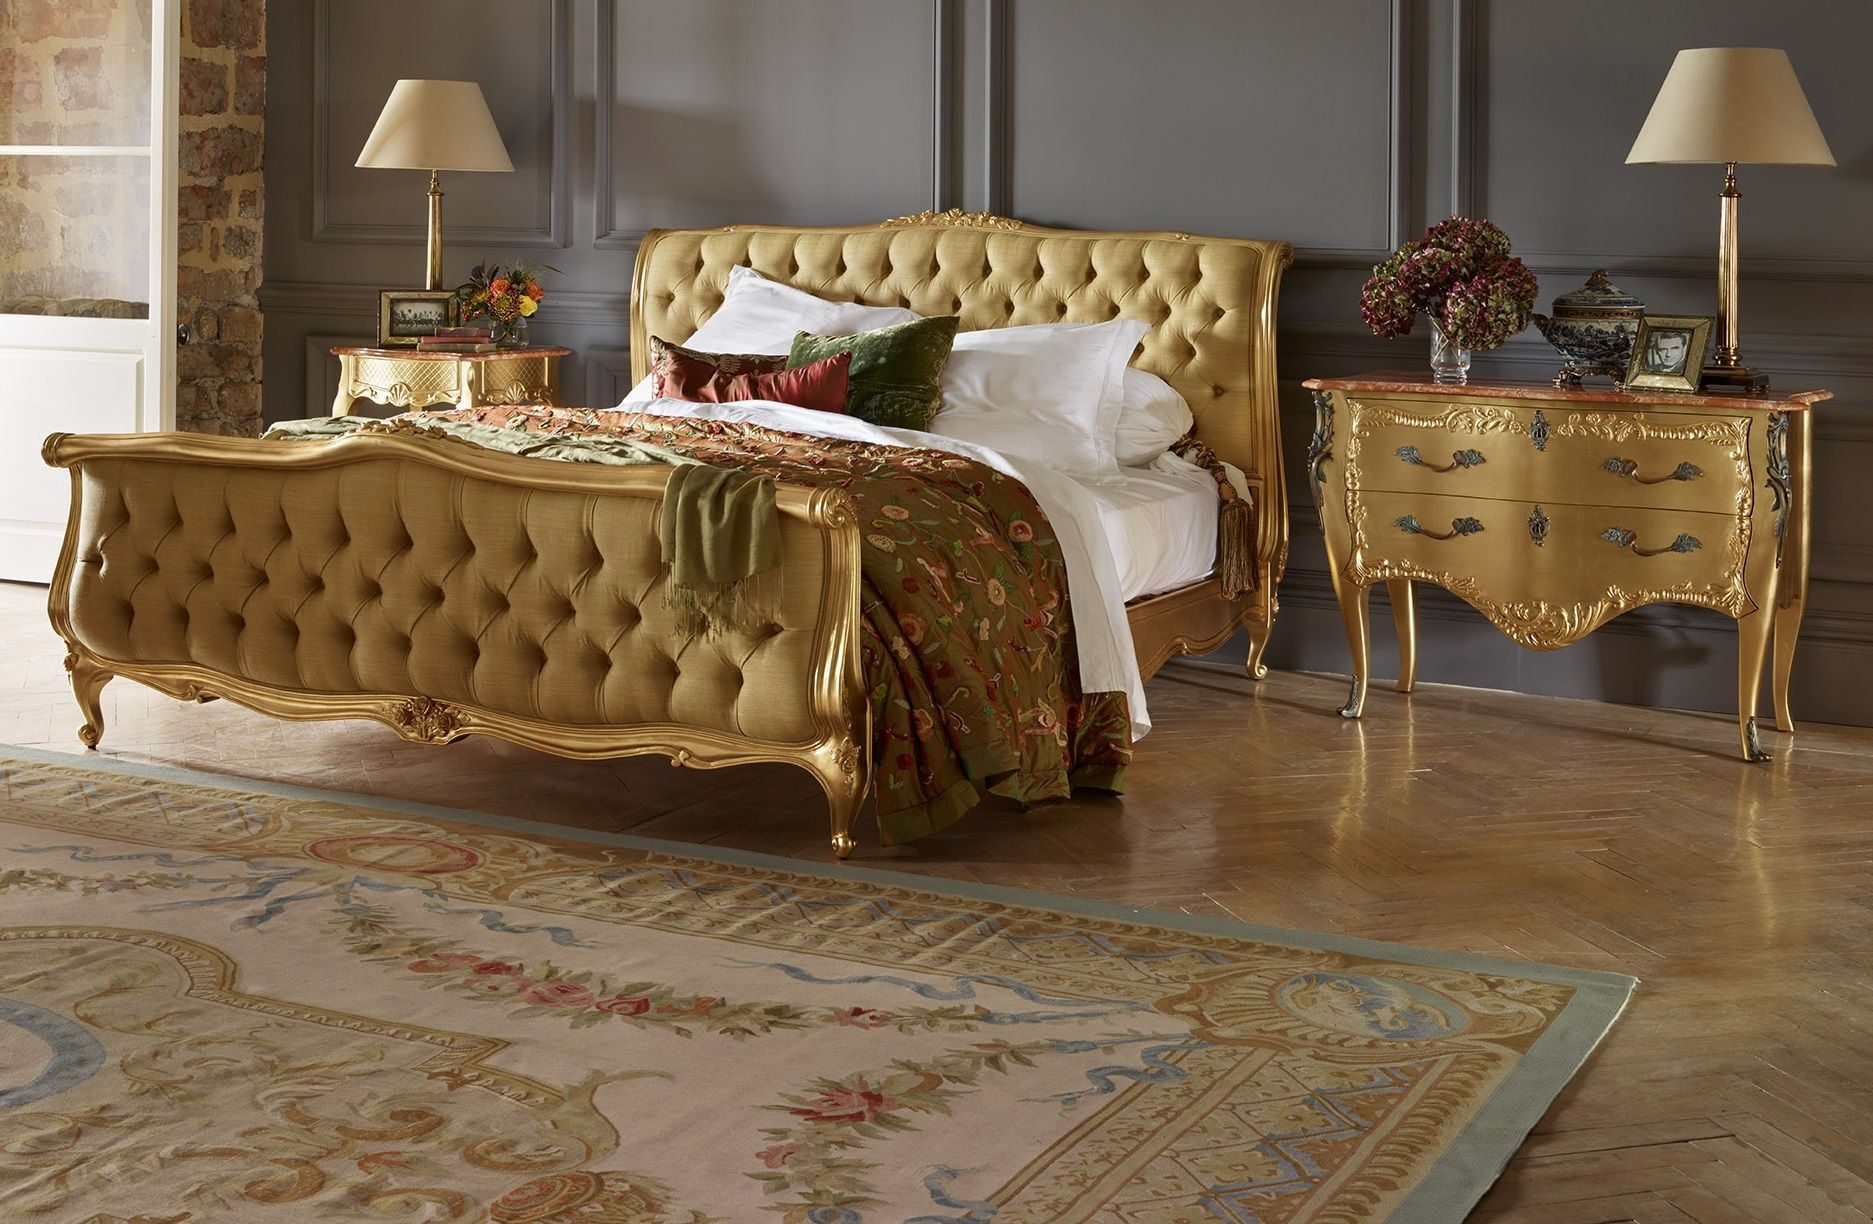 Louis xv bedroom furniture - Explore Luxury Bed Upholstered Beds And More The Louis Xv